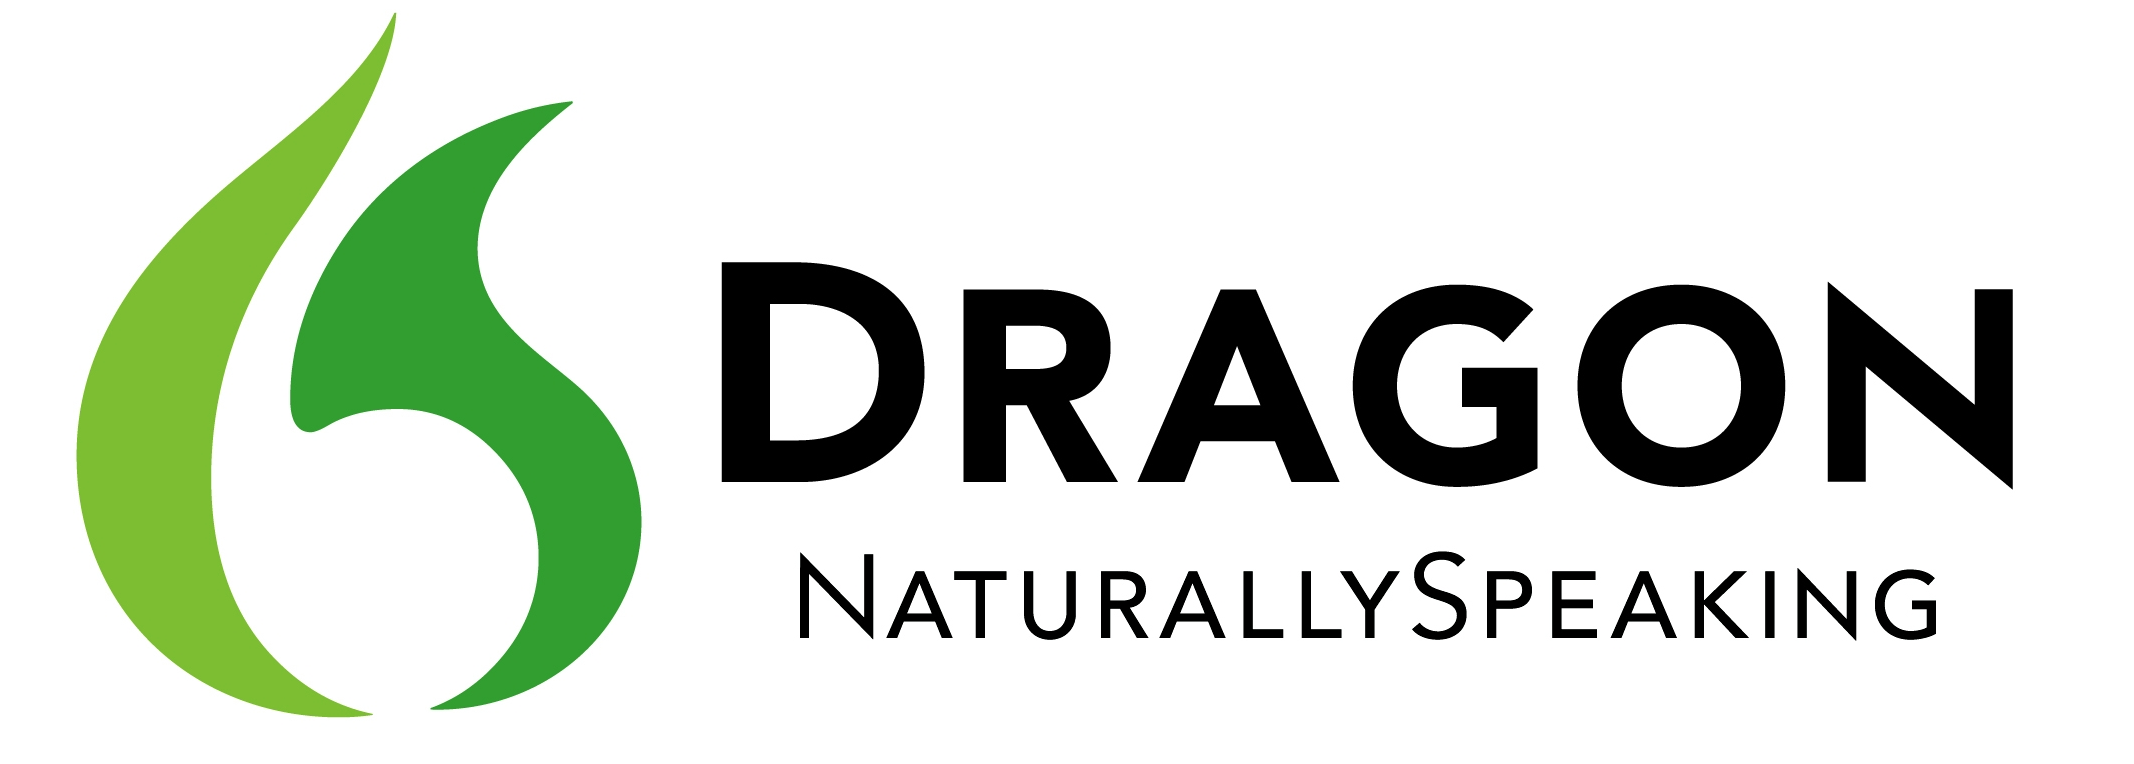 Dragon Naturally Speaking - best tool for content writing.png